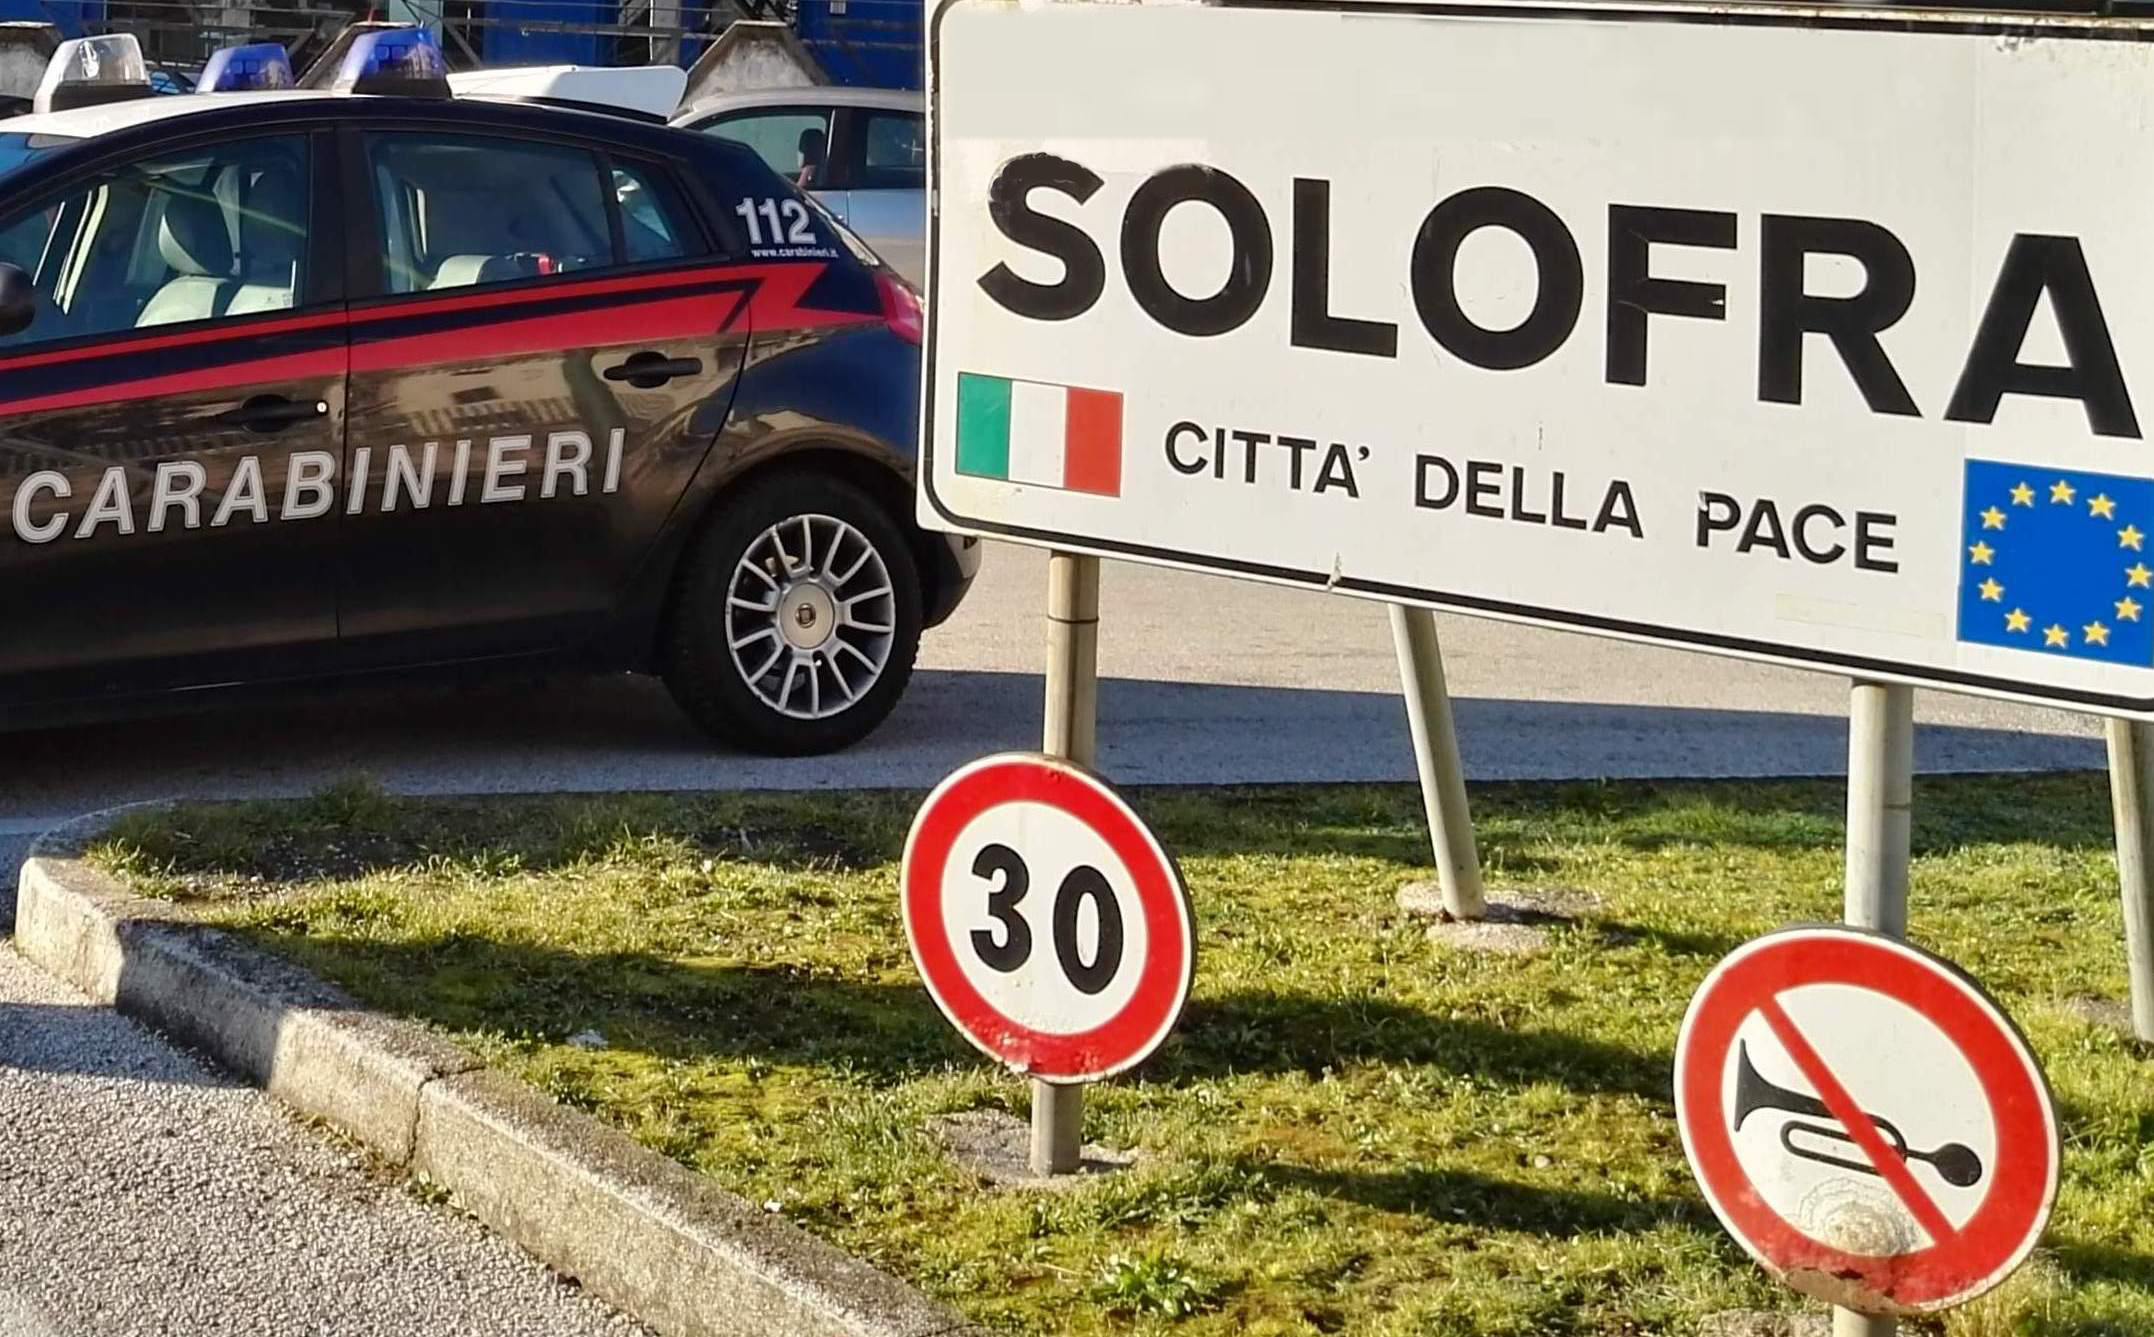 Photo of Solofra, emessa un'ordinanza di custodia per un 35enne avellinese con precedenti